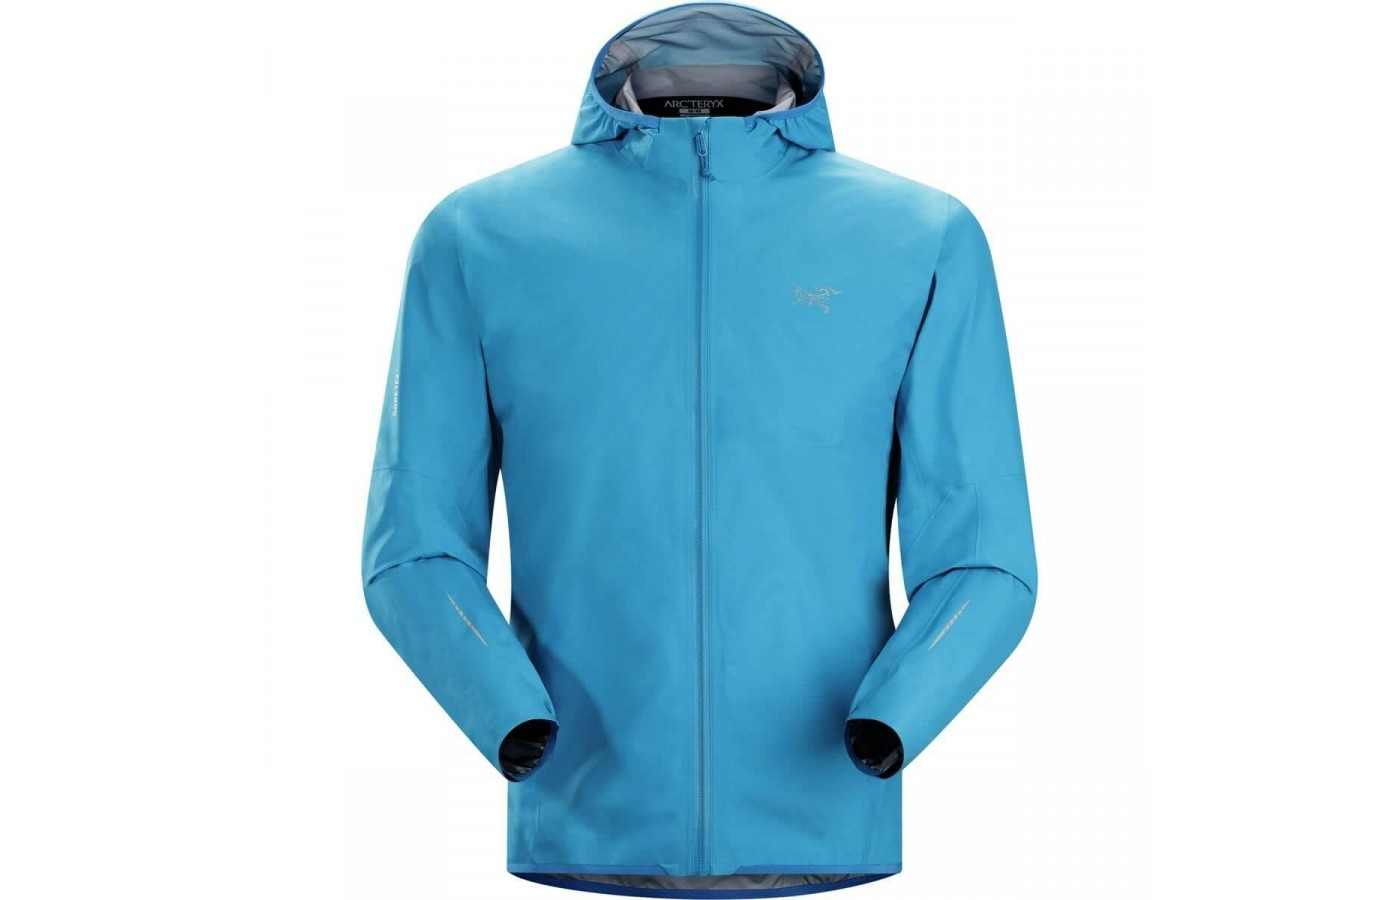 The Arc'teryx Norvan Jacket comes in a stunning Adriatic Blue